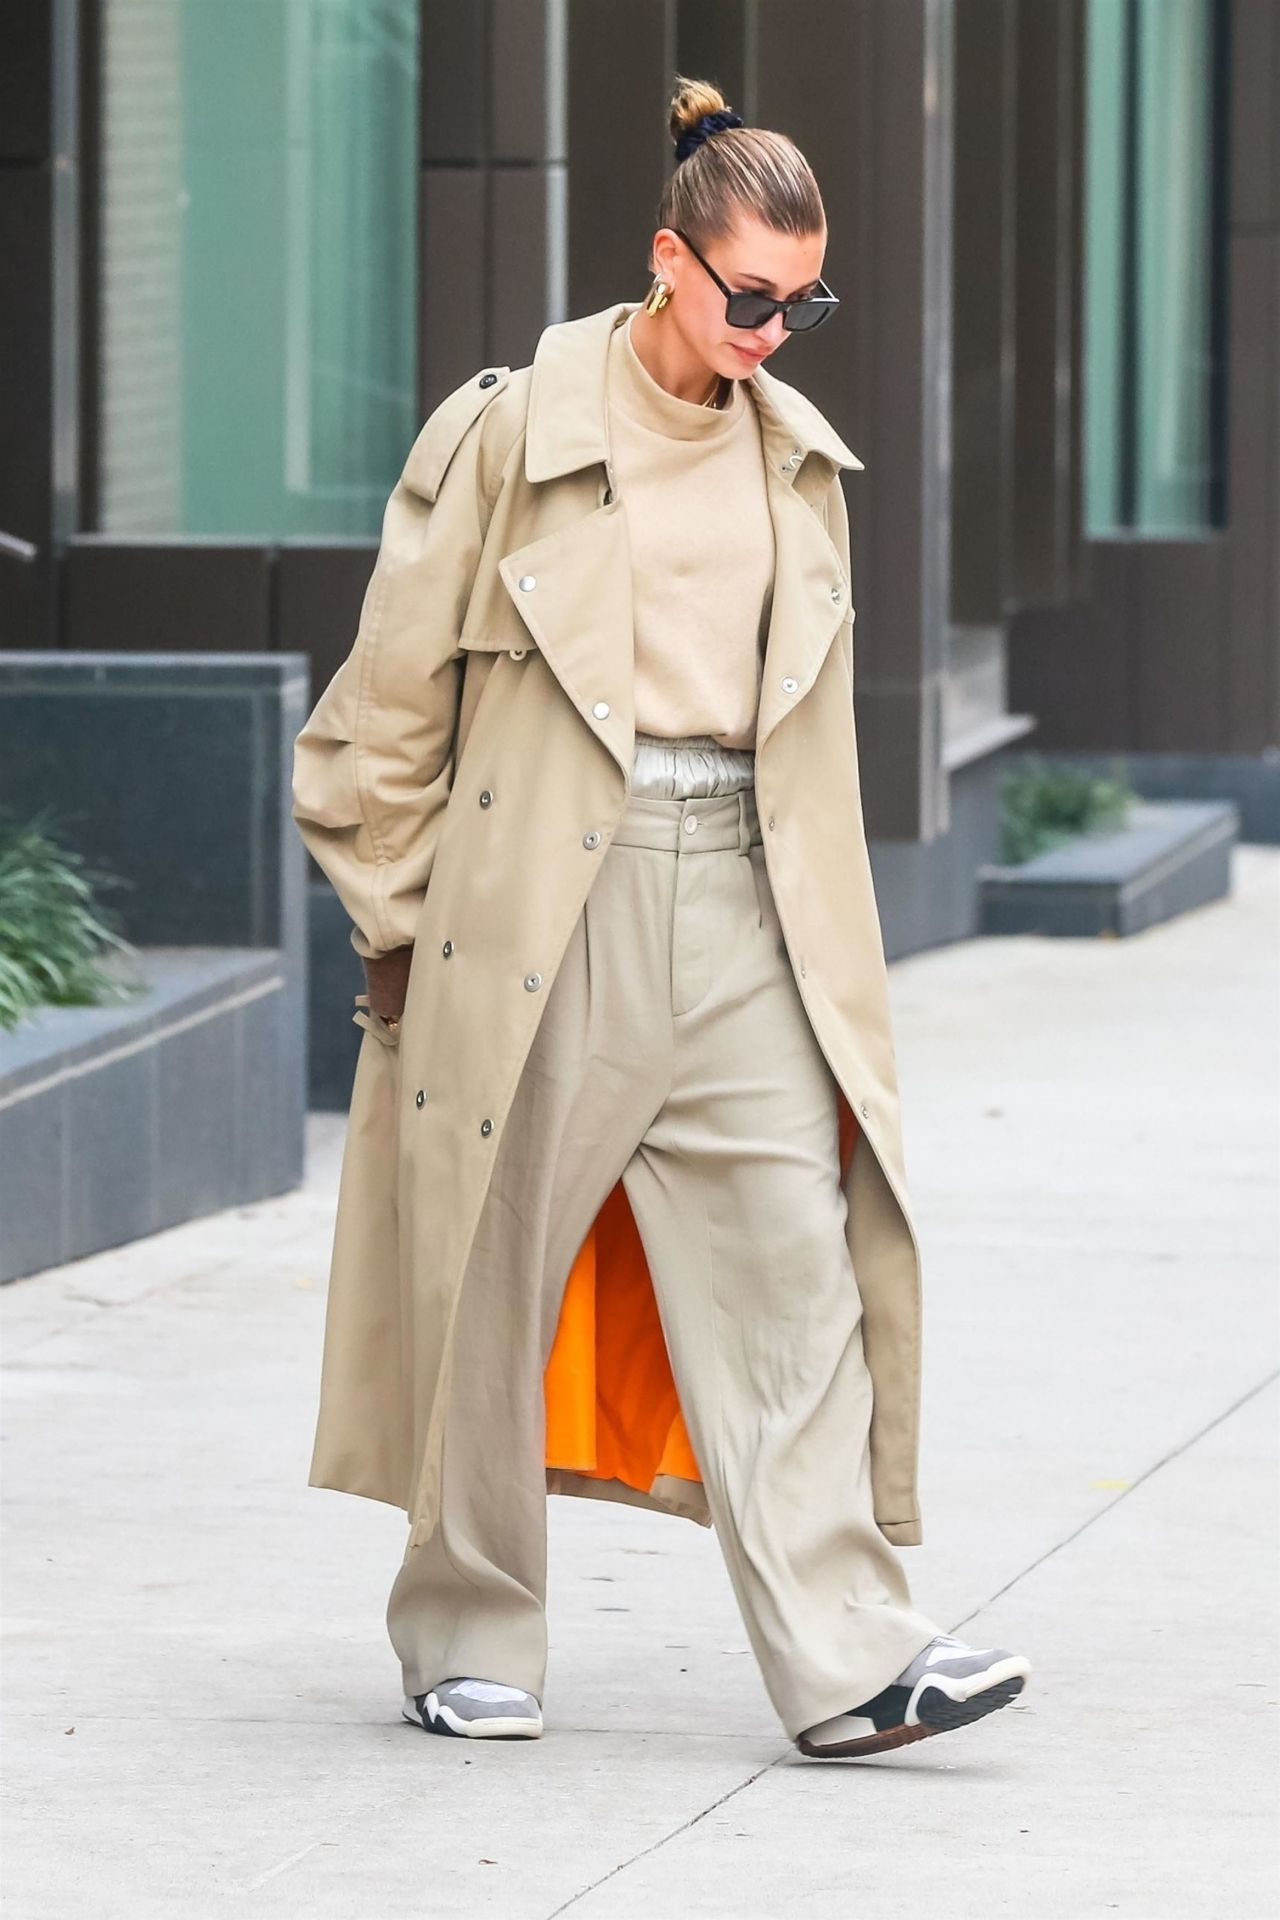 19 Stylish Fall Outfits Worth Copying: Leaving Her Apartment In NYC 11